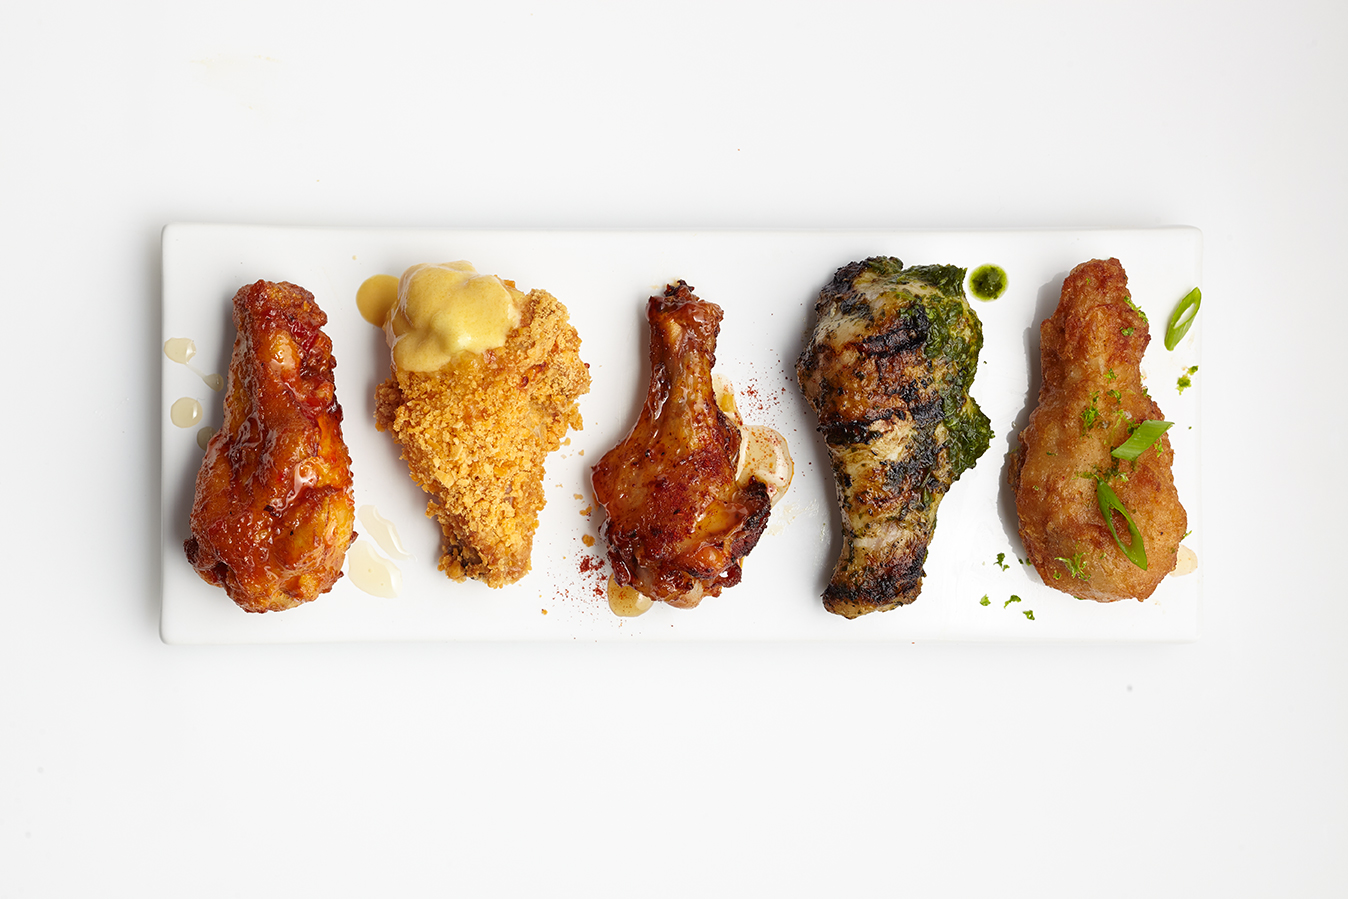 Super Bowl Wings Five Ways: Beer-Battered Thai, Gilled Chimichurri, Smoky Maple, Crunchy Cheddar, Honey-Harissa